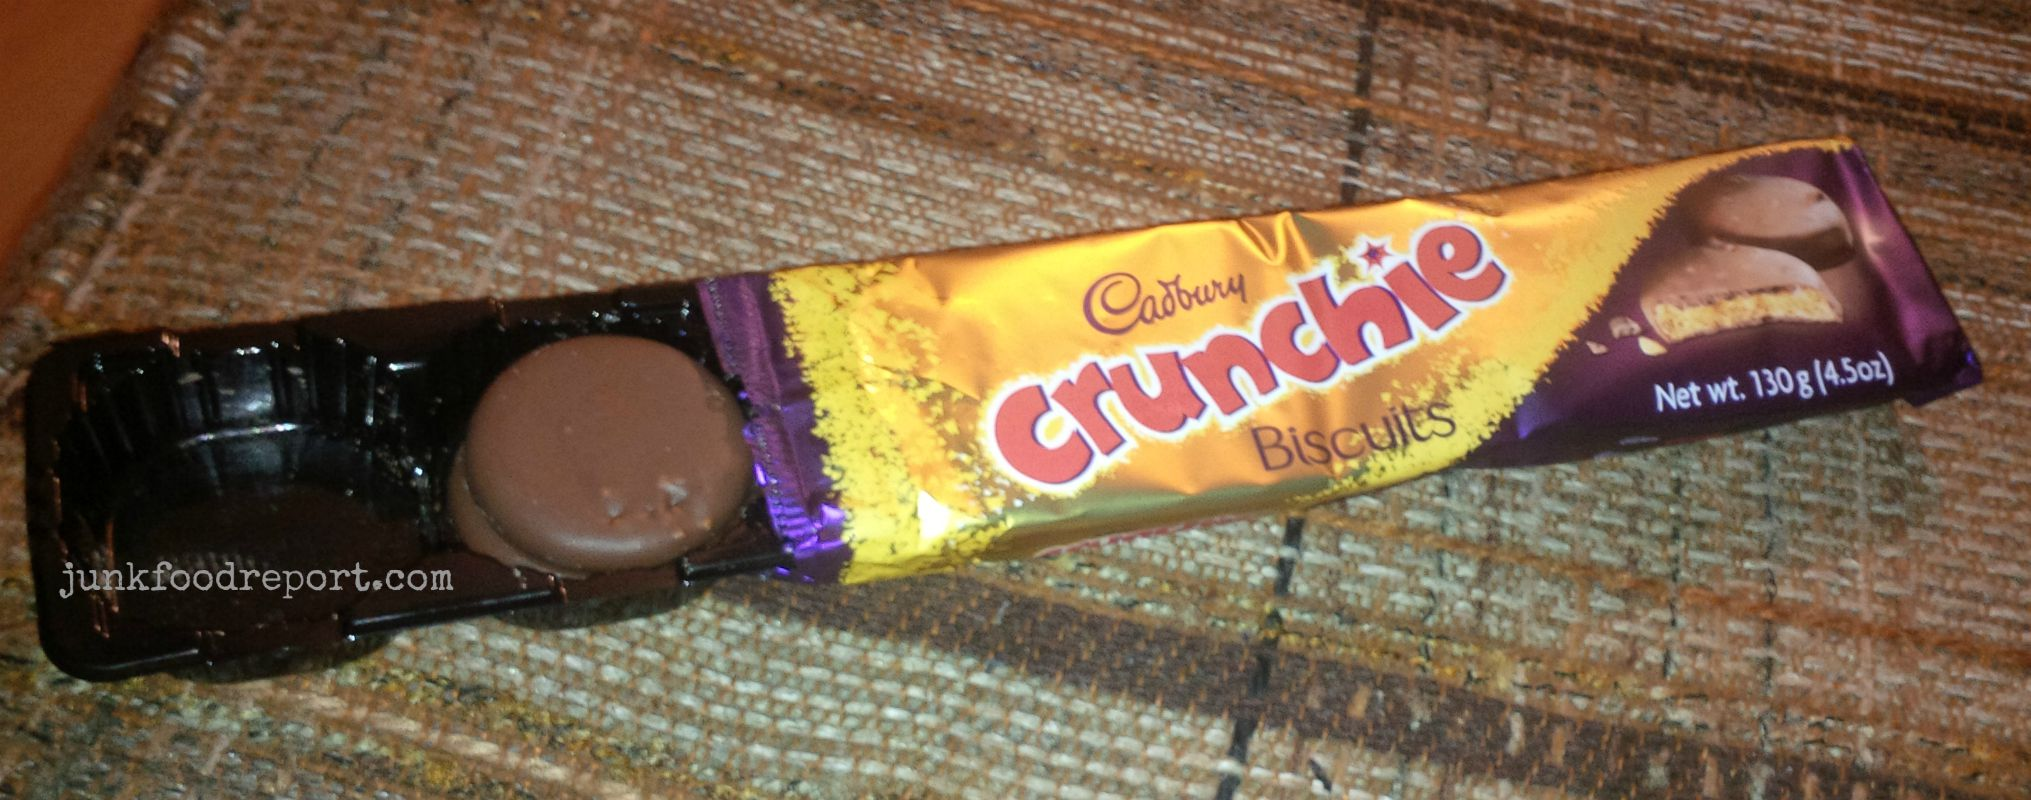 Cadbury's Crunchie Biscuits